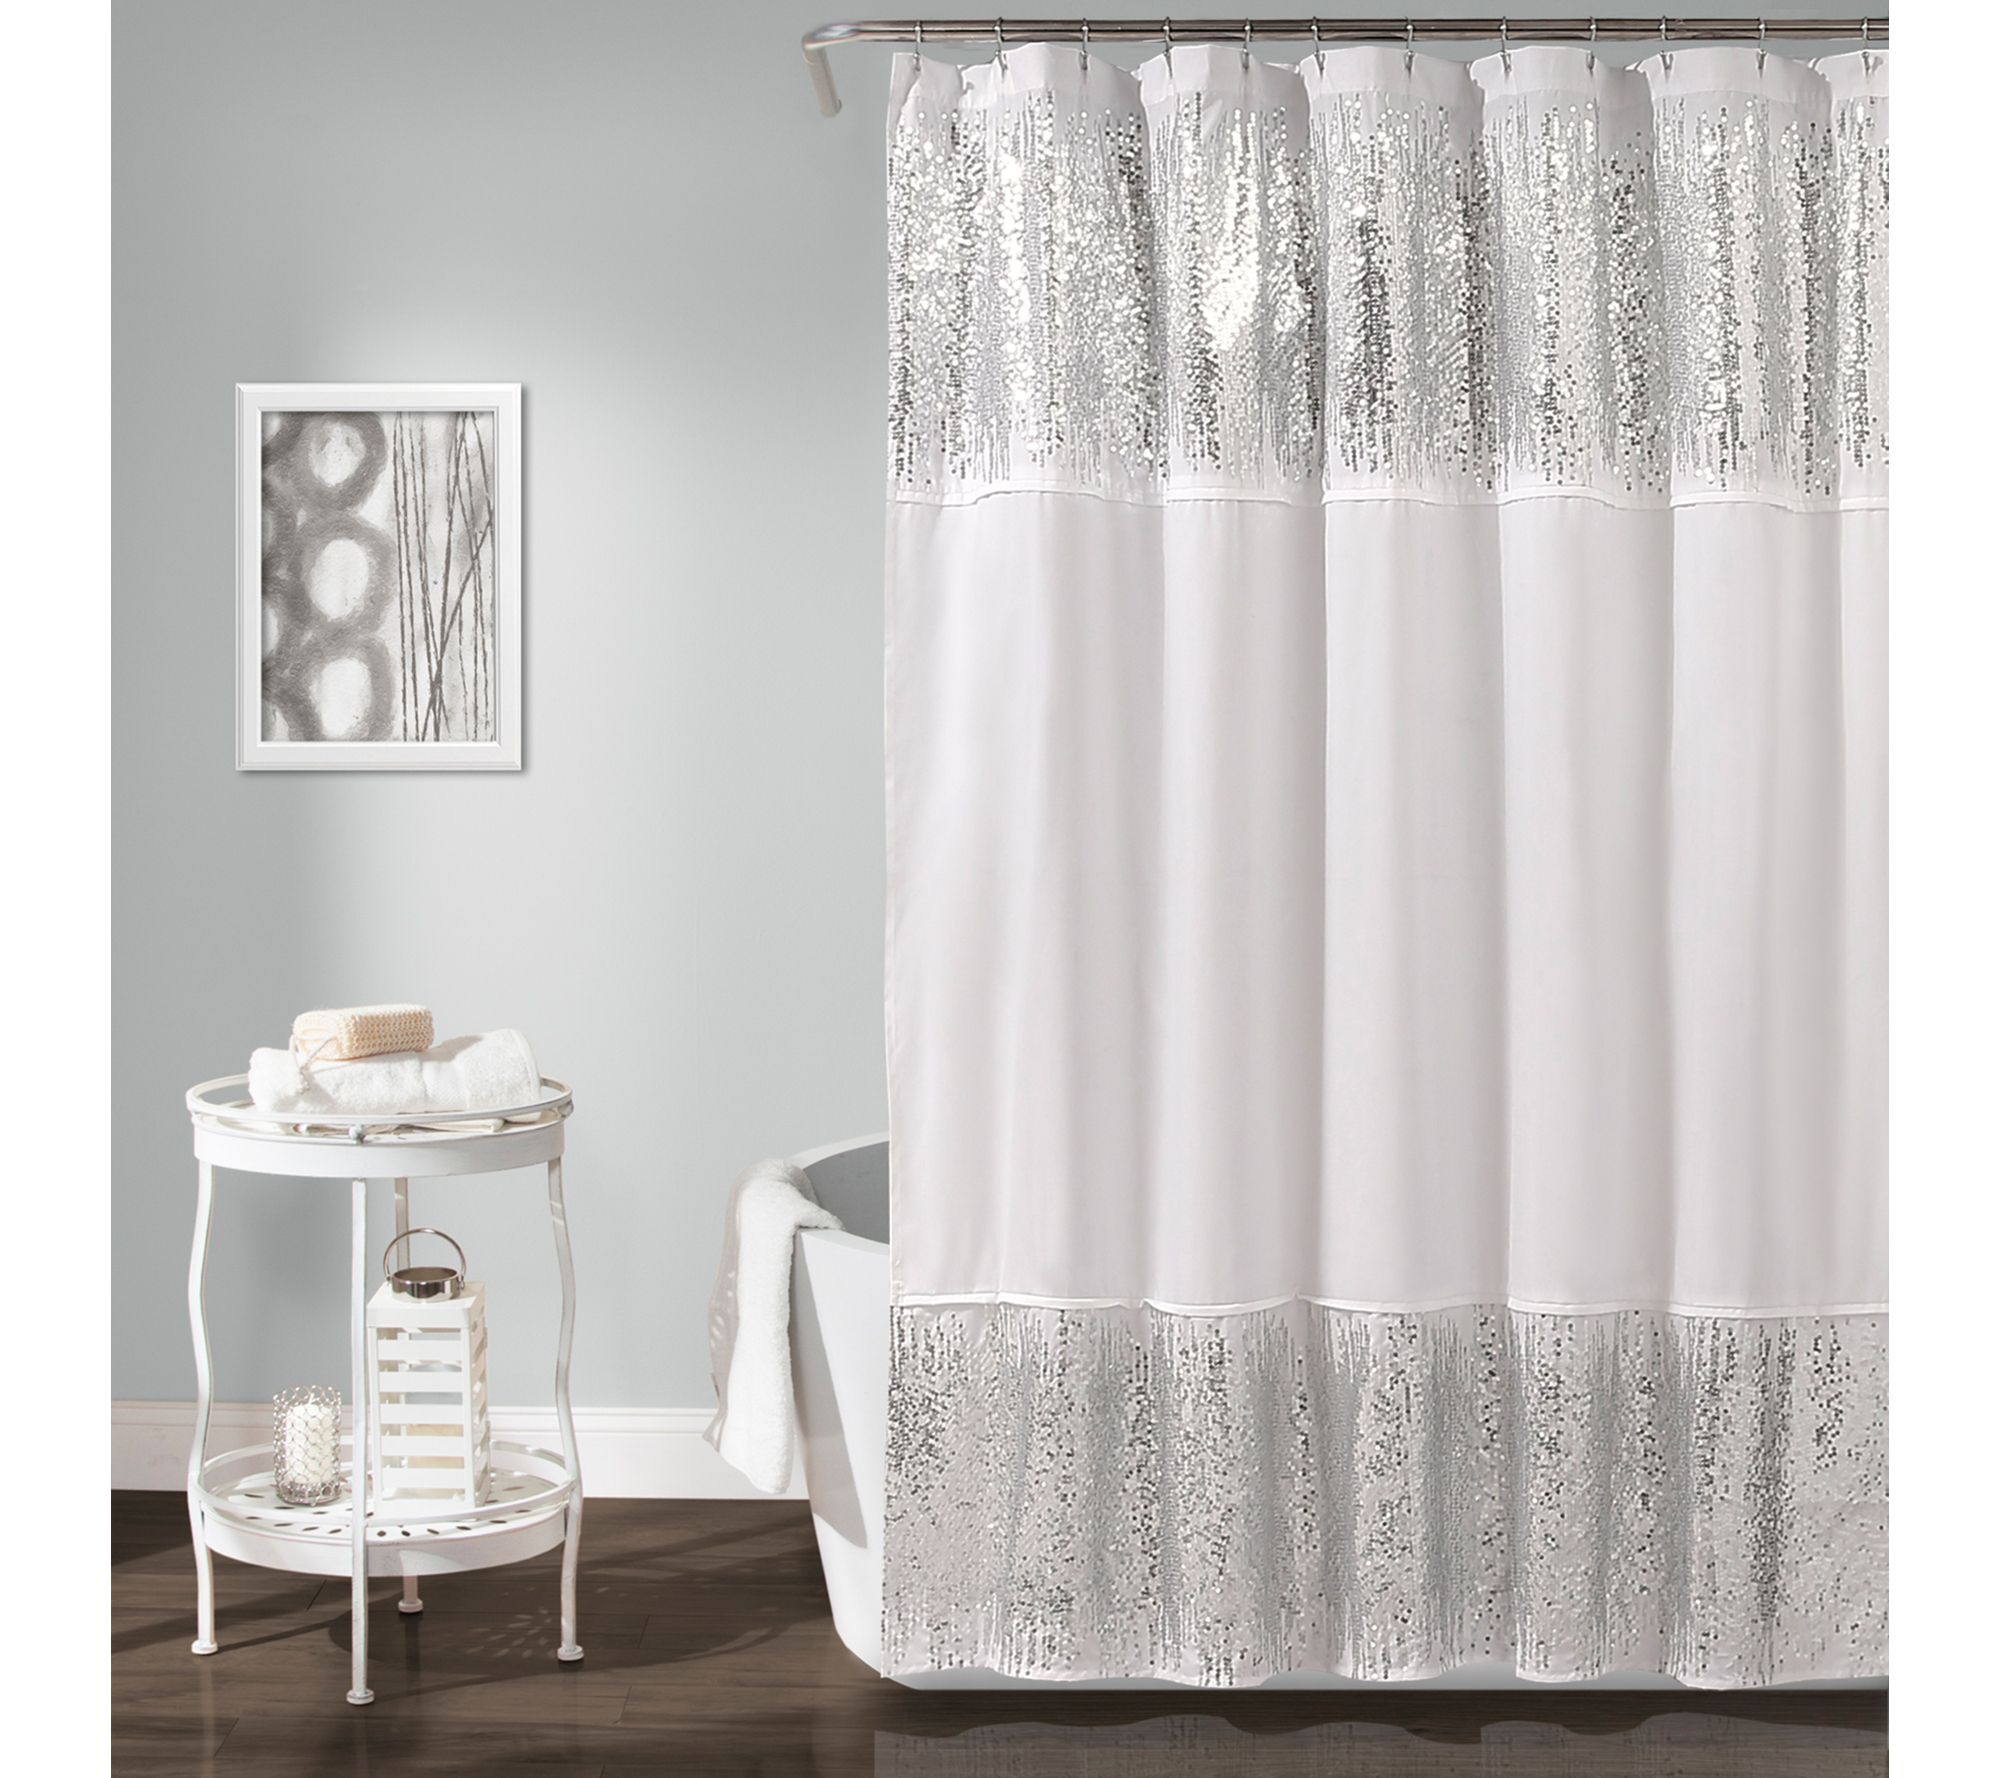 Shower Curtain By Lush Decor